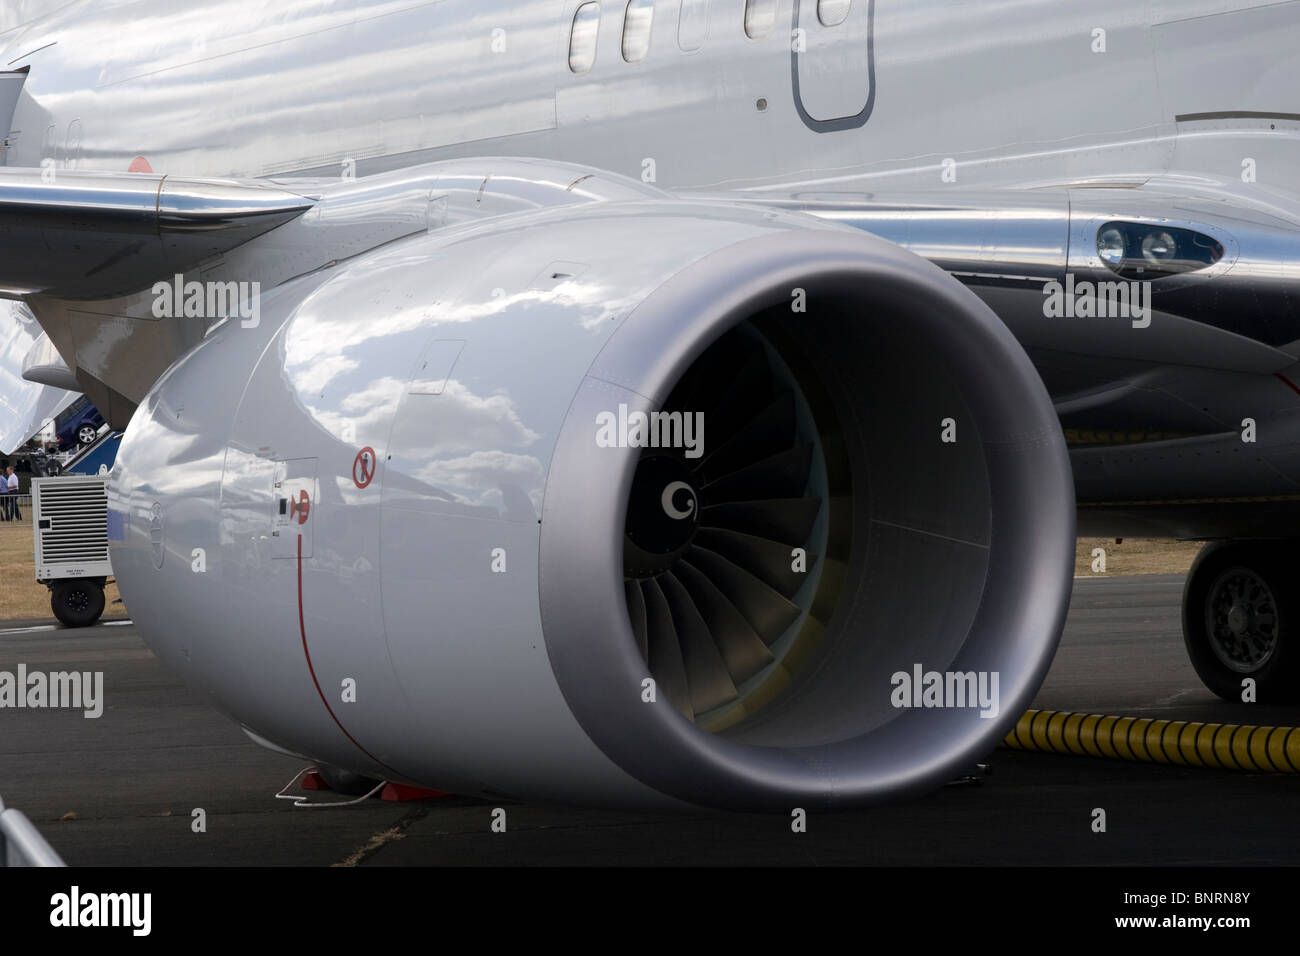 CFM56 high bypass turbofan engine fitted to Boeing 737 at